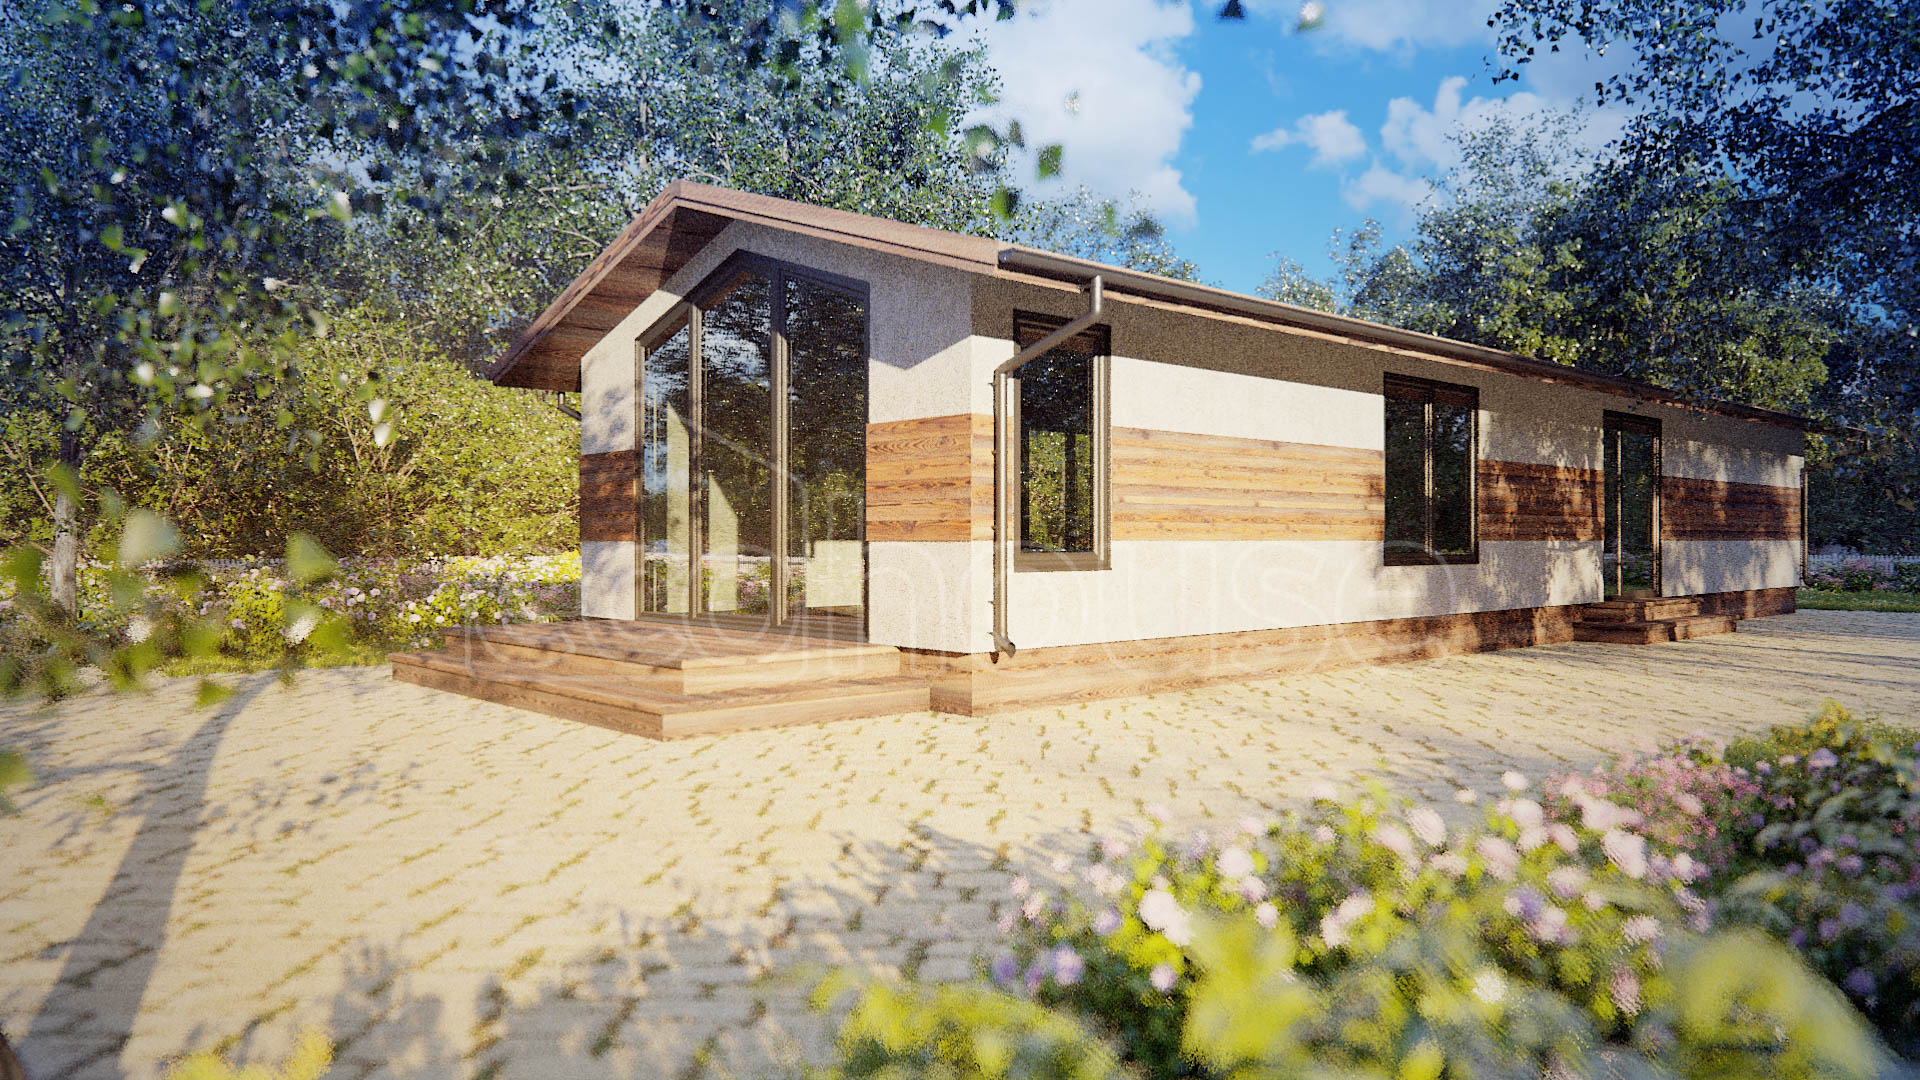 eco house Please contact us by phone from 8 am – 4:30 pm et, or fill out the form below to send us an email.